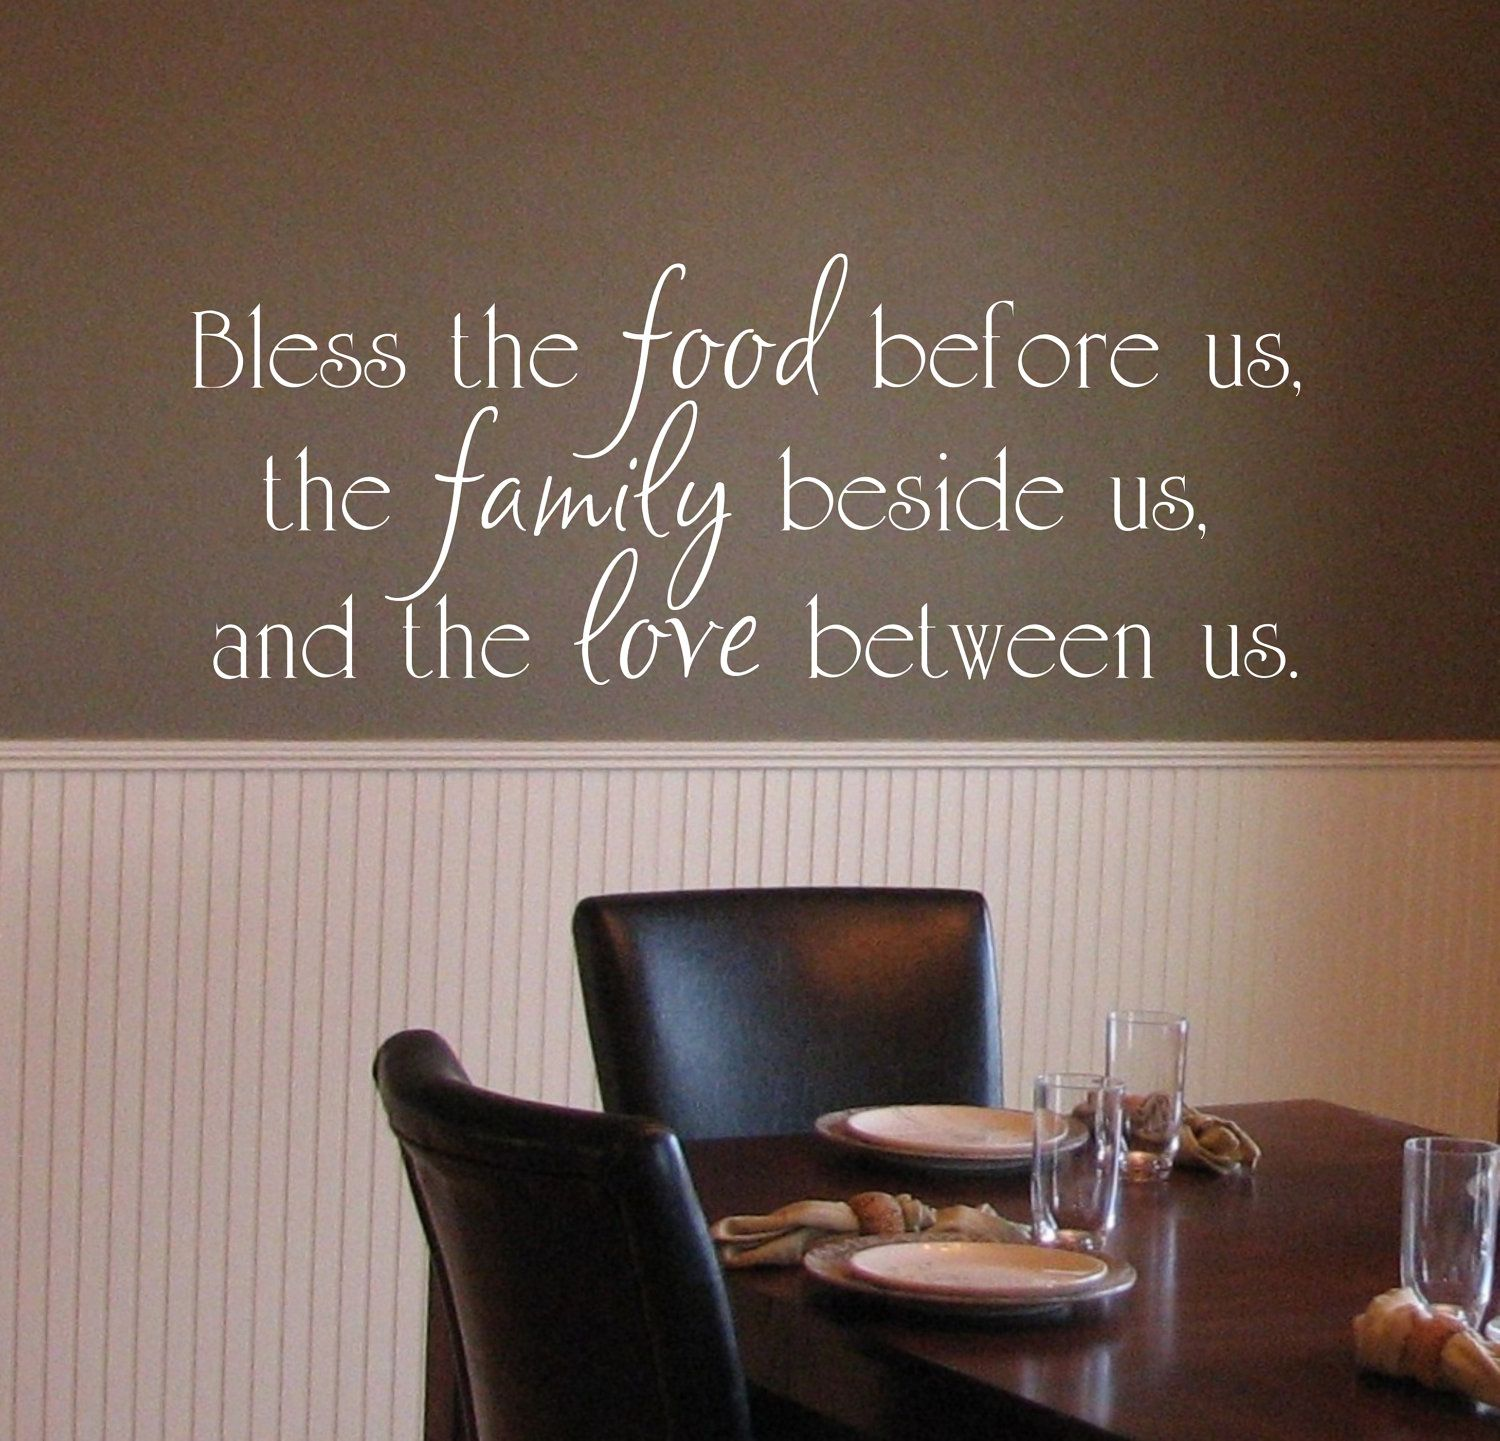 Bedroom wall art quotes - Bless The Food Before Us The Family Beside Us And The Love Between Us Vinyl Wall Decal Dining Room Kitchen Vinyl Wall Art Will Definitely Do This In